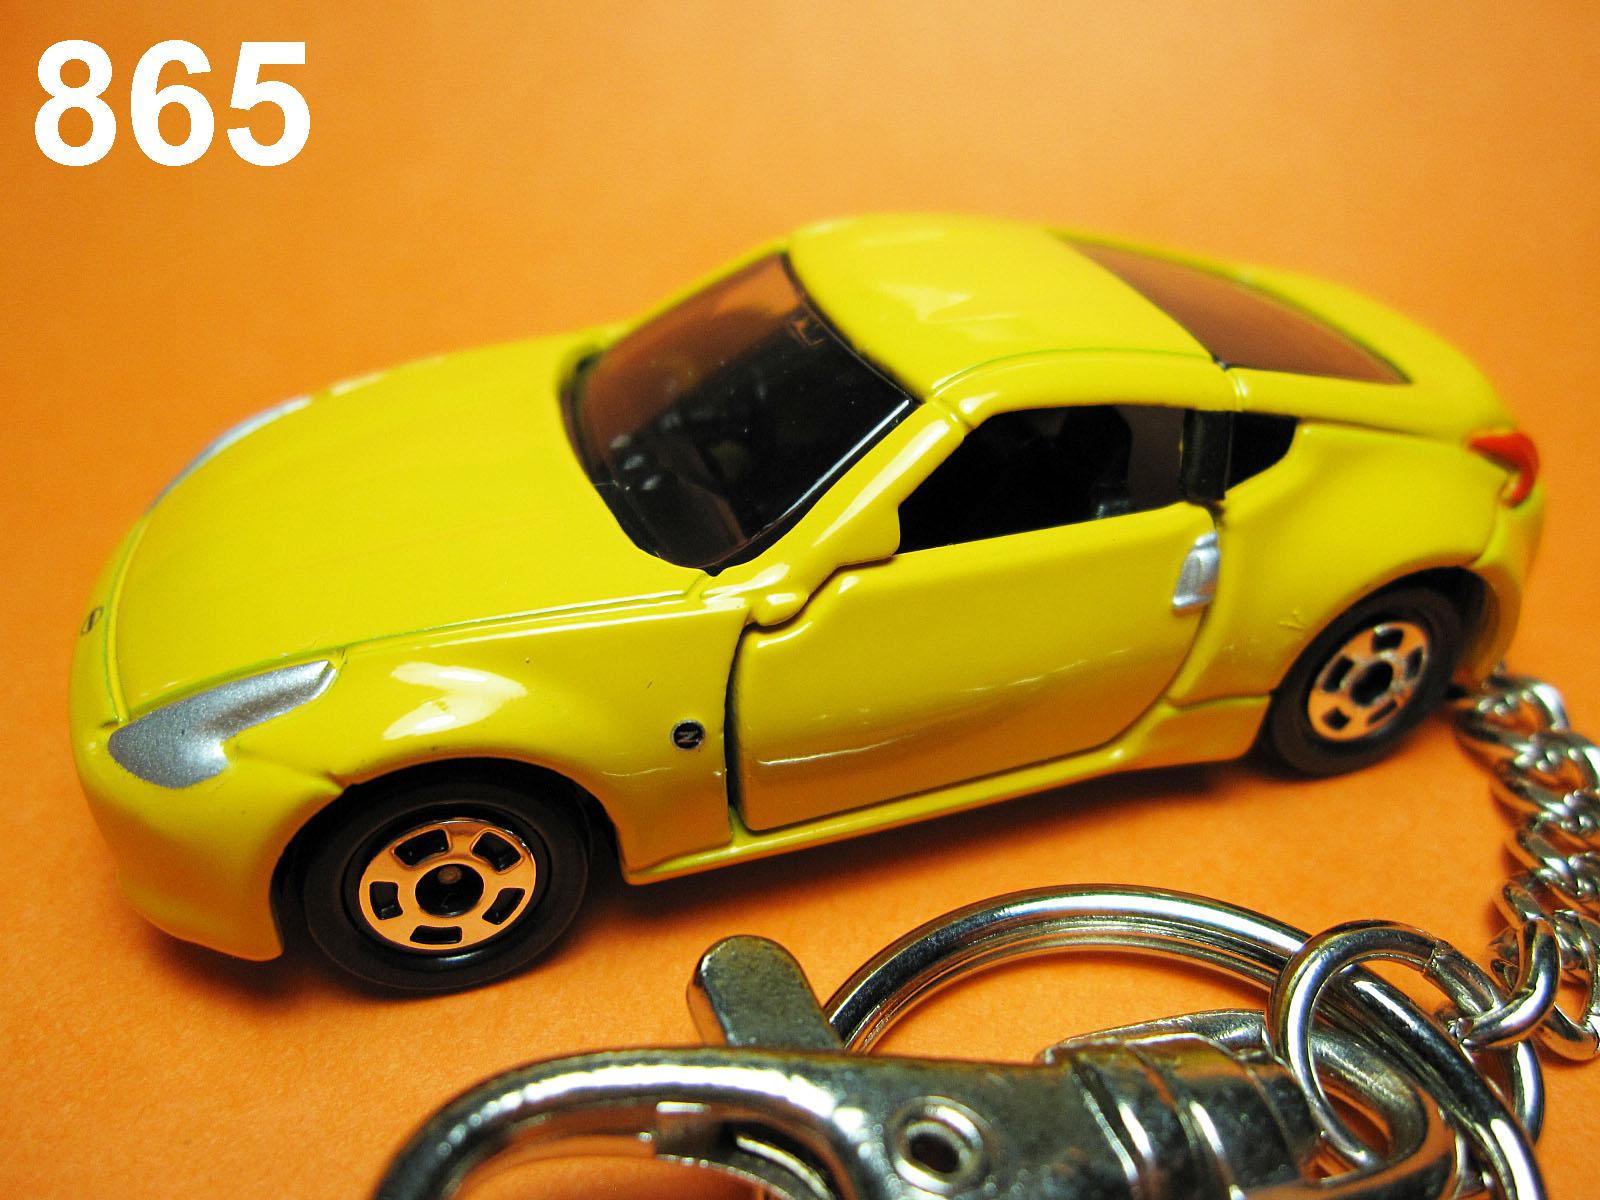 Nissan New Fairlady 370Z (Yellow) Die-cast Key Chain